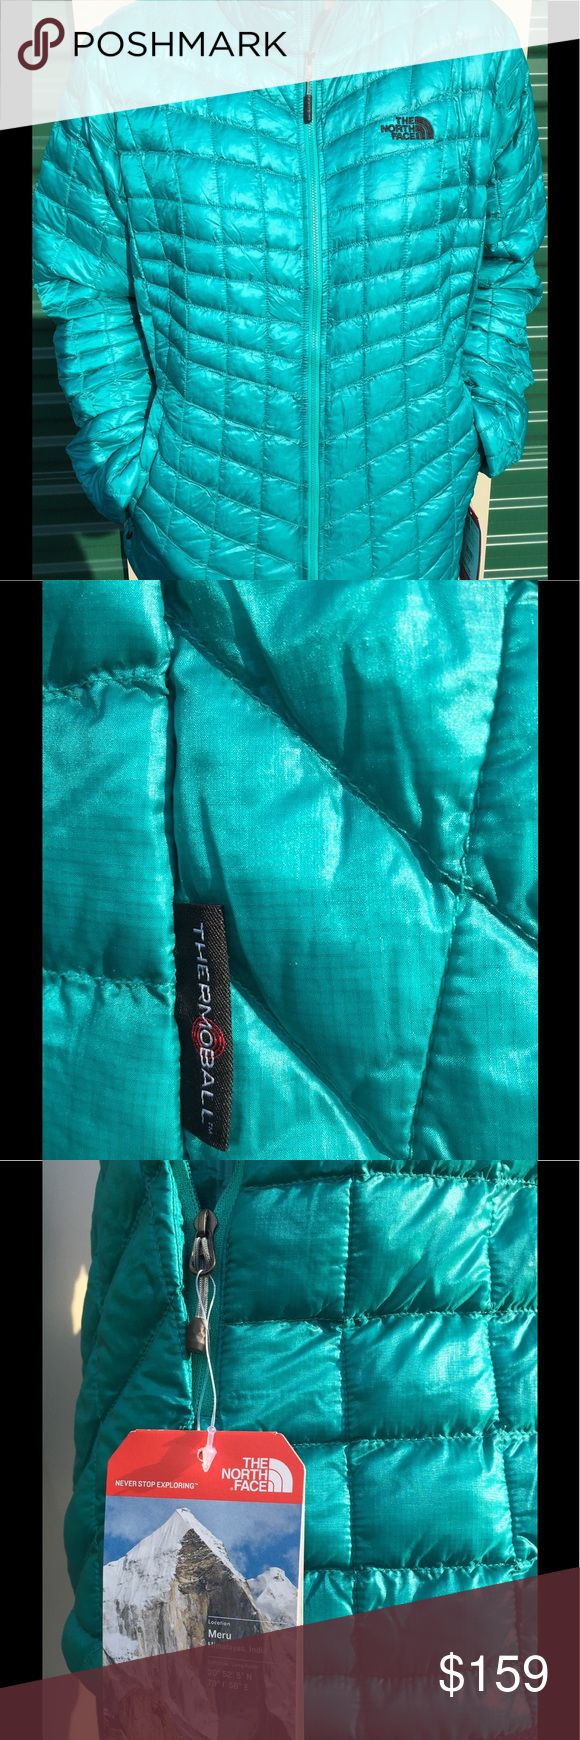 NEW The North Face Women's Thermoball Jacket Brand new With Tag, The North Face Women's Thermoball Full Zip Jacket in Kokomo green color in XL.   No trades! Price is firm. The North Face Jackets & Coats